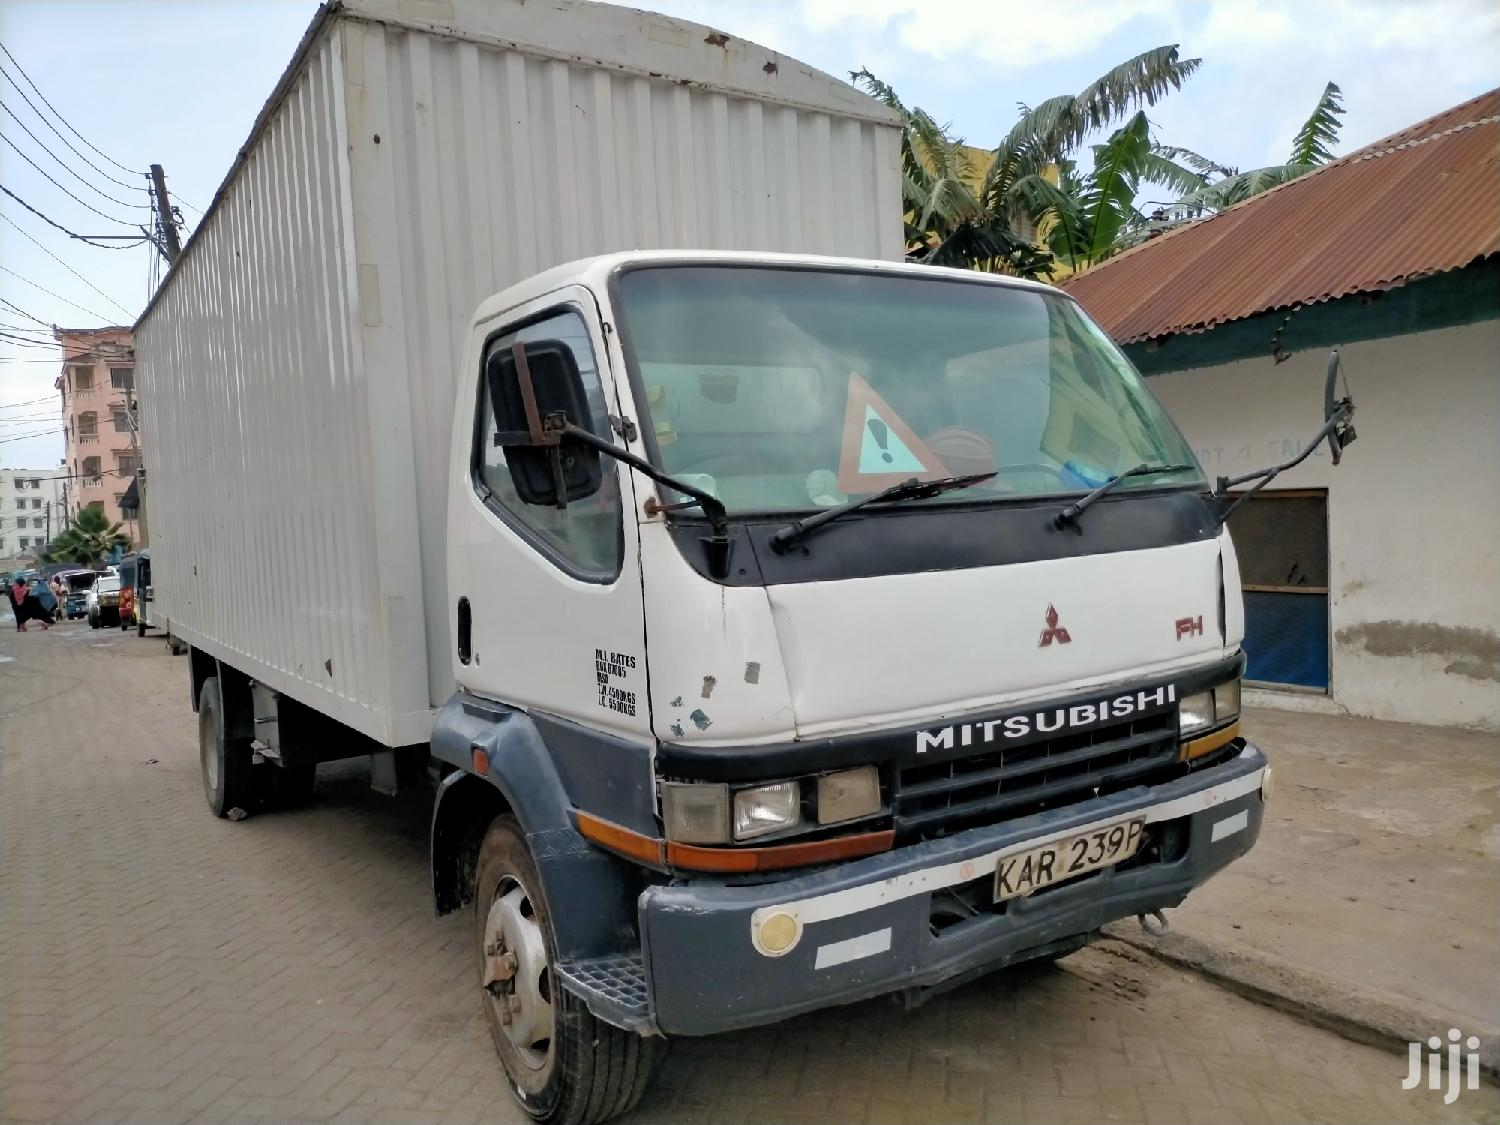 Mitsubishi Fh | Trucks & Trailers for sale in Tudor, Mombasa, Kenya